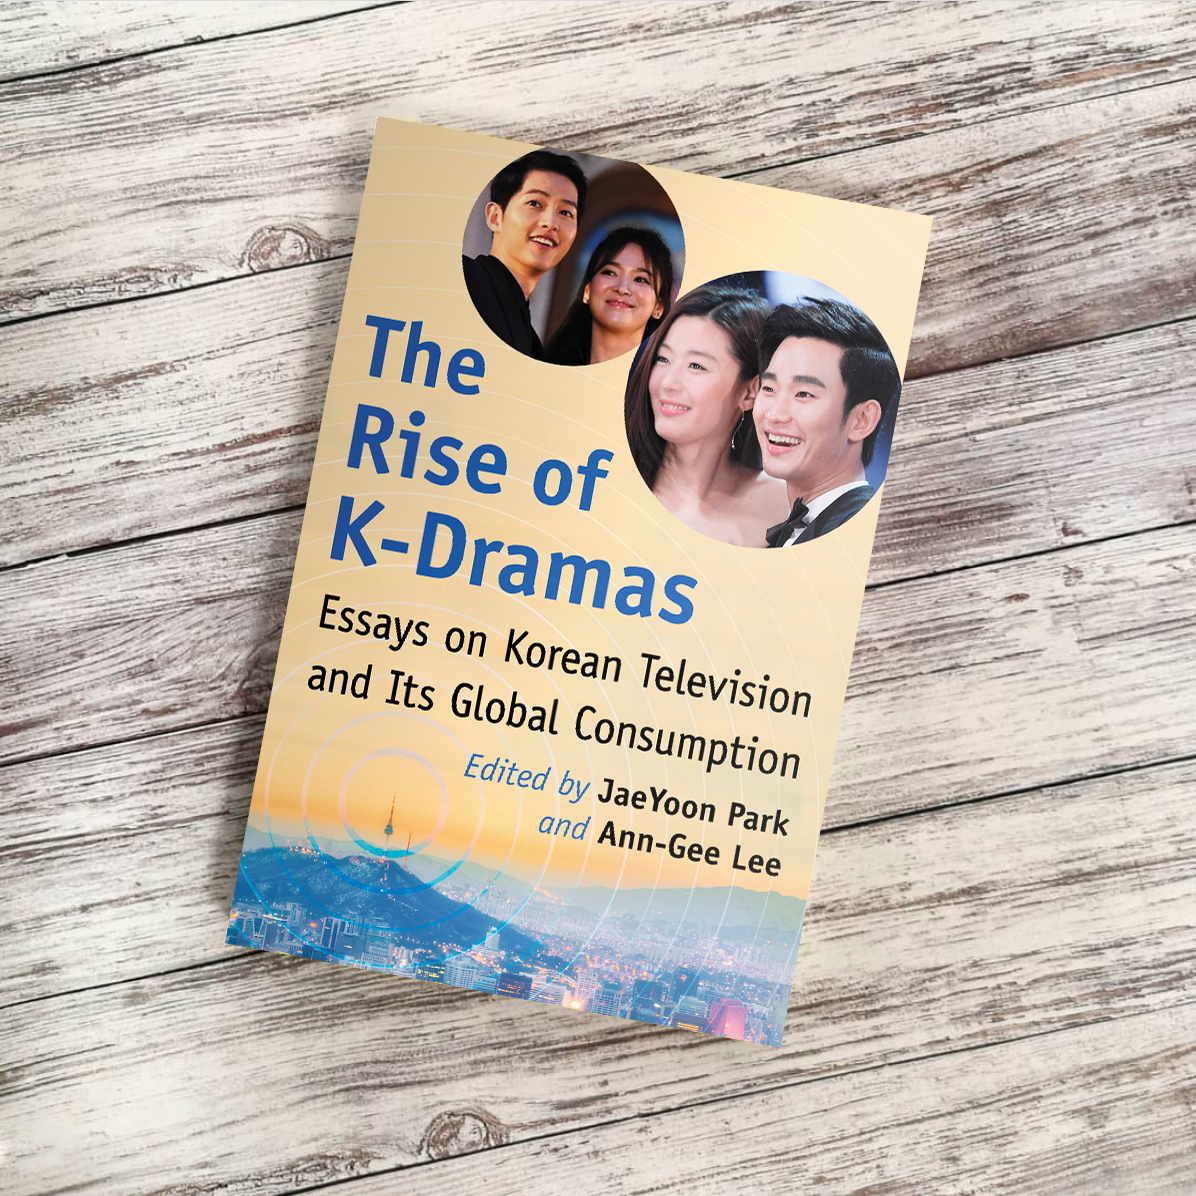 the-rise-of-k-dramas